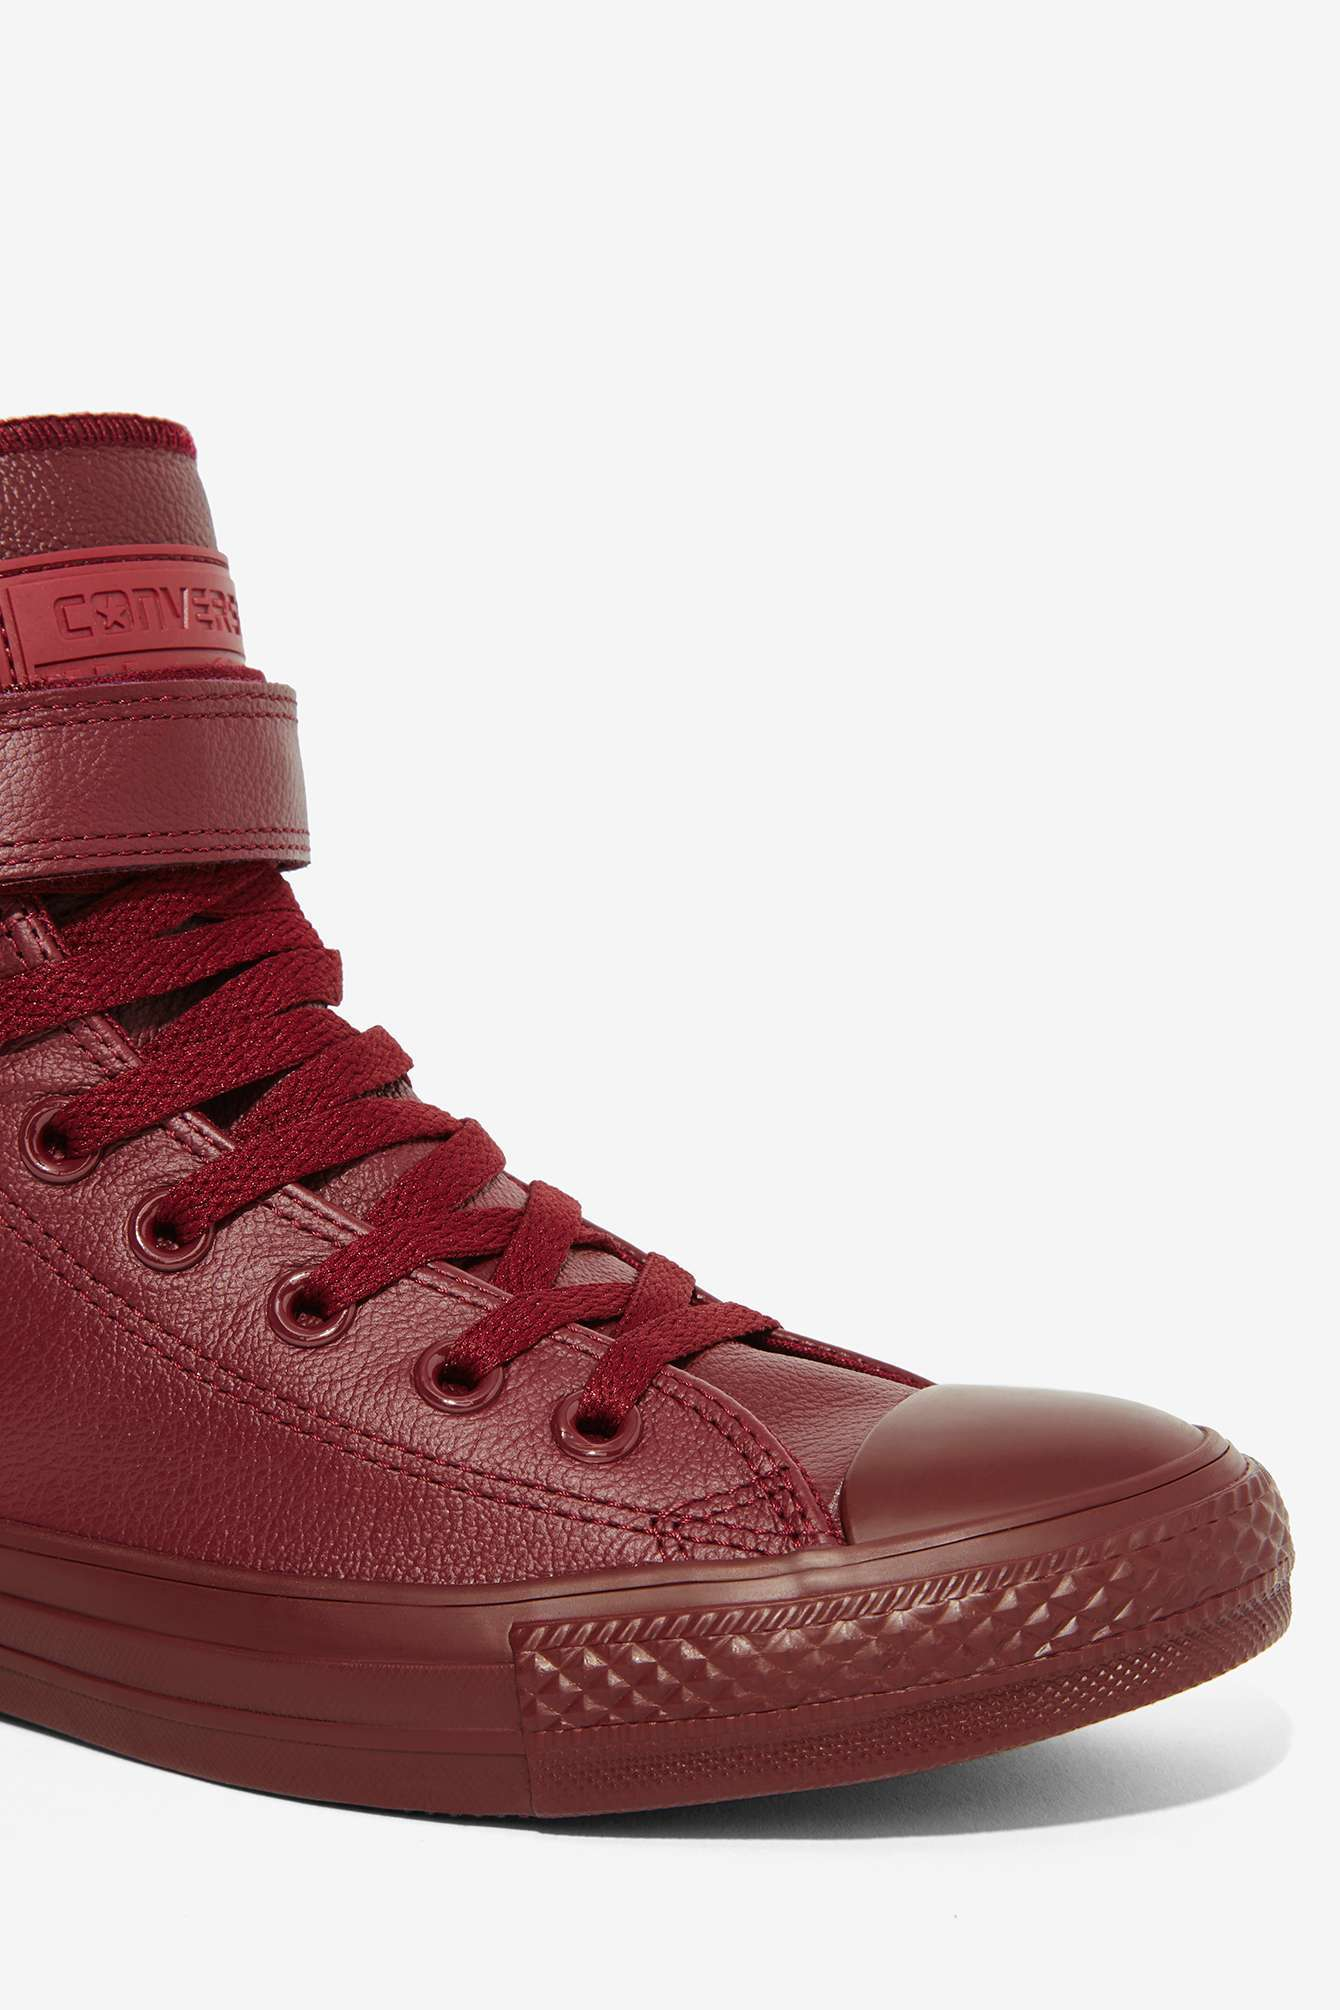 Lyst - Converse Chuck Taylor Brea Leather Sneaker - Burgundy in Red 48187c3fbd16